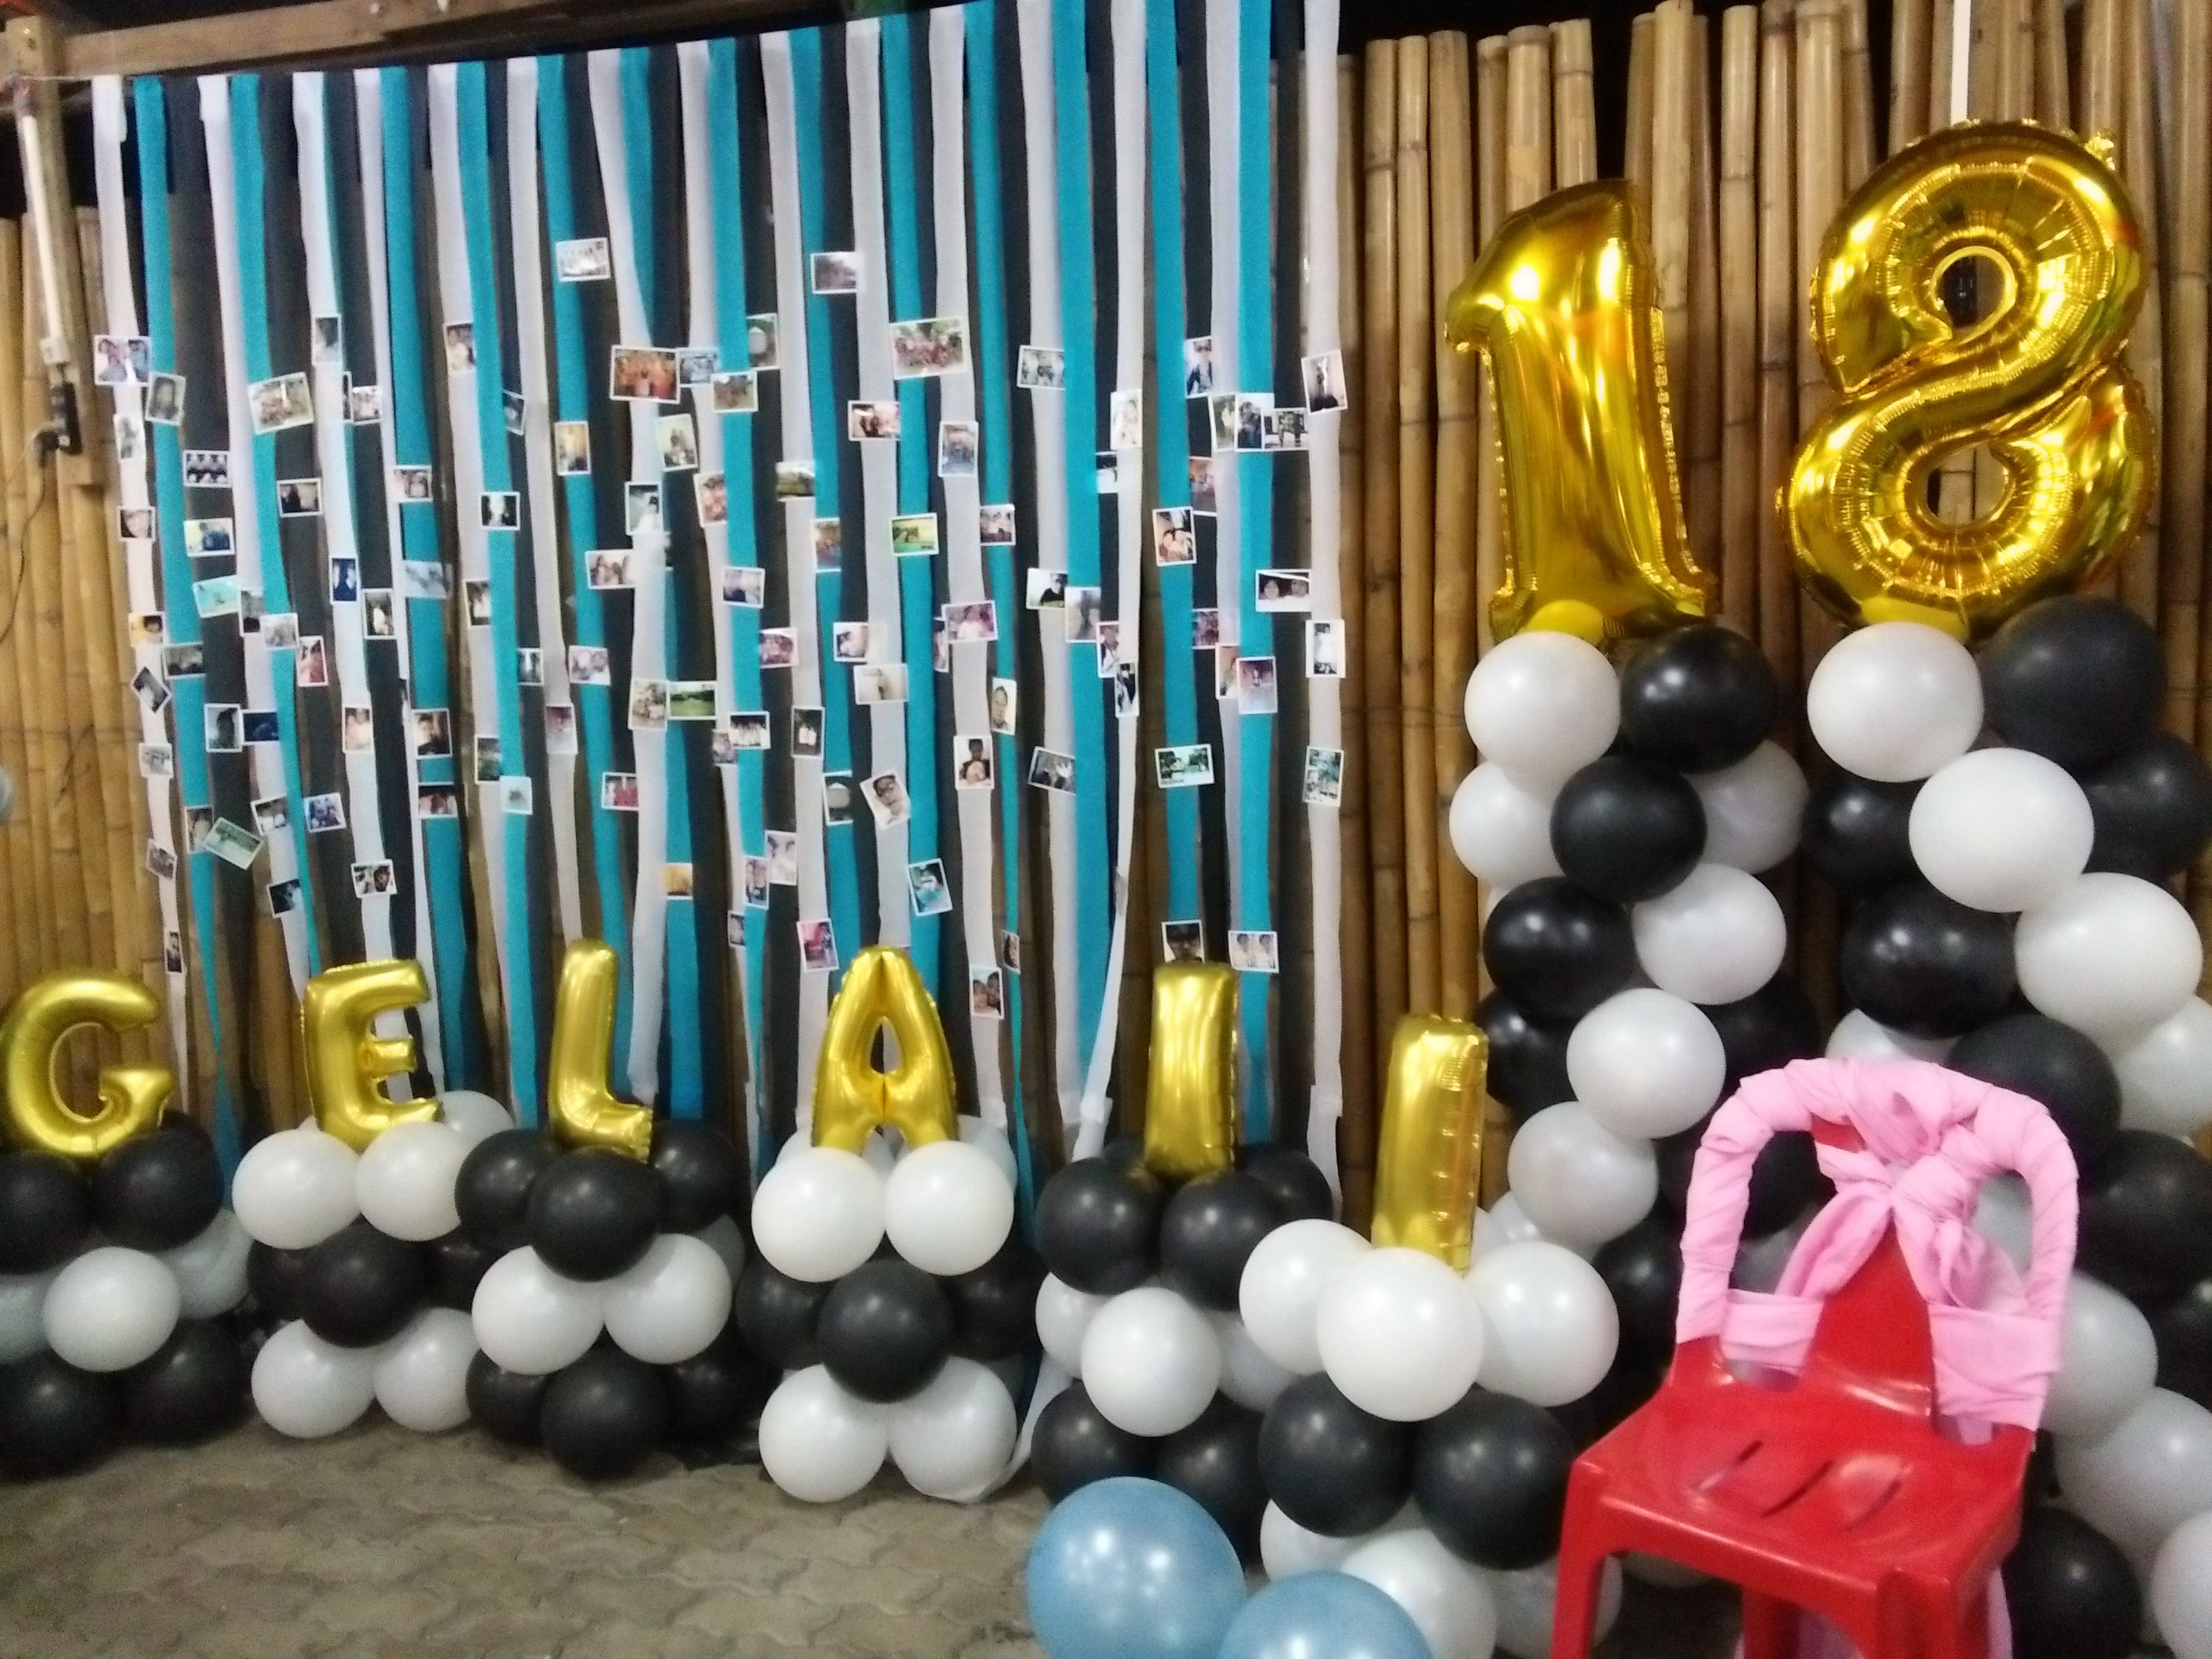 Debut party 18th birthday client of me art balloons marikina debut party 18th birthday client of me art balloons marikina cainta philippines stopboris Choice Image